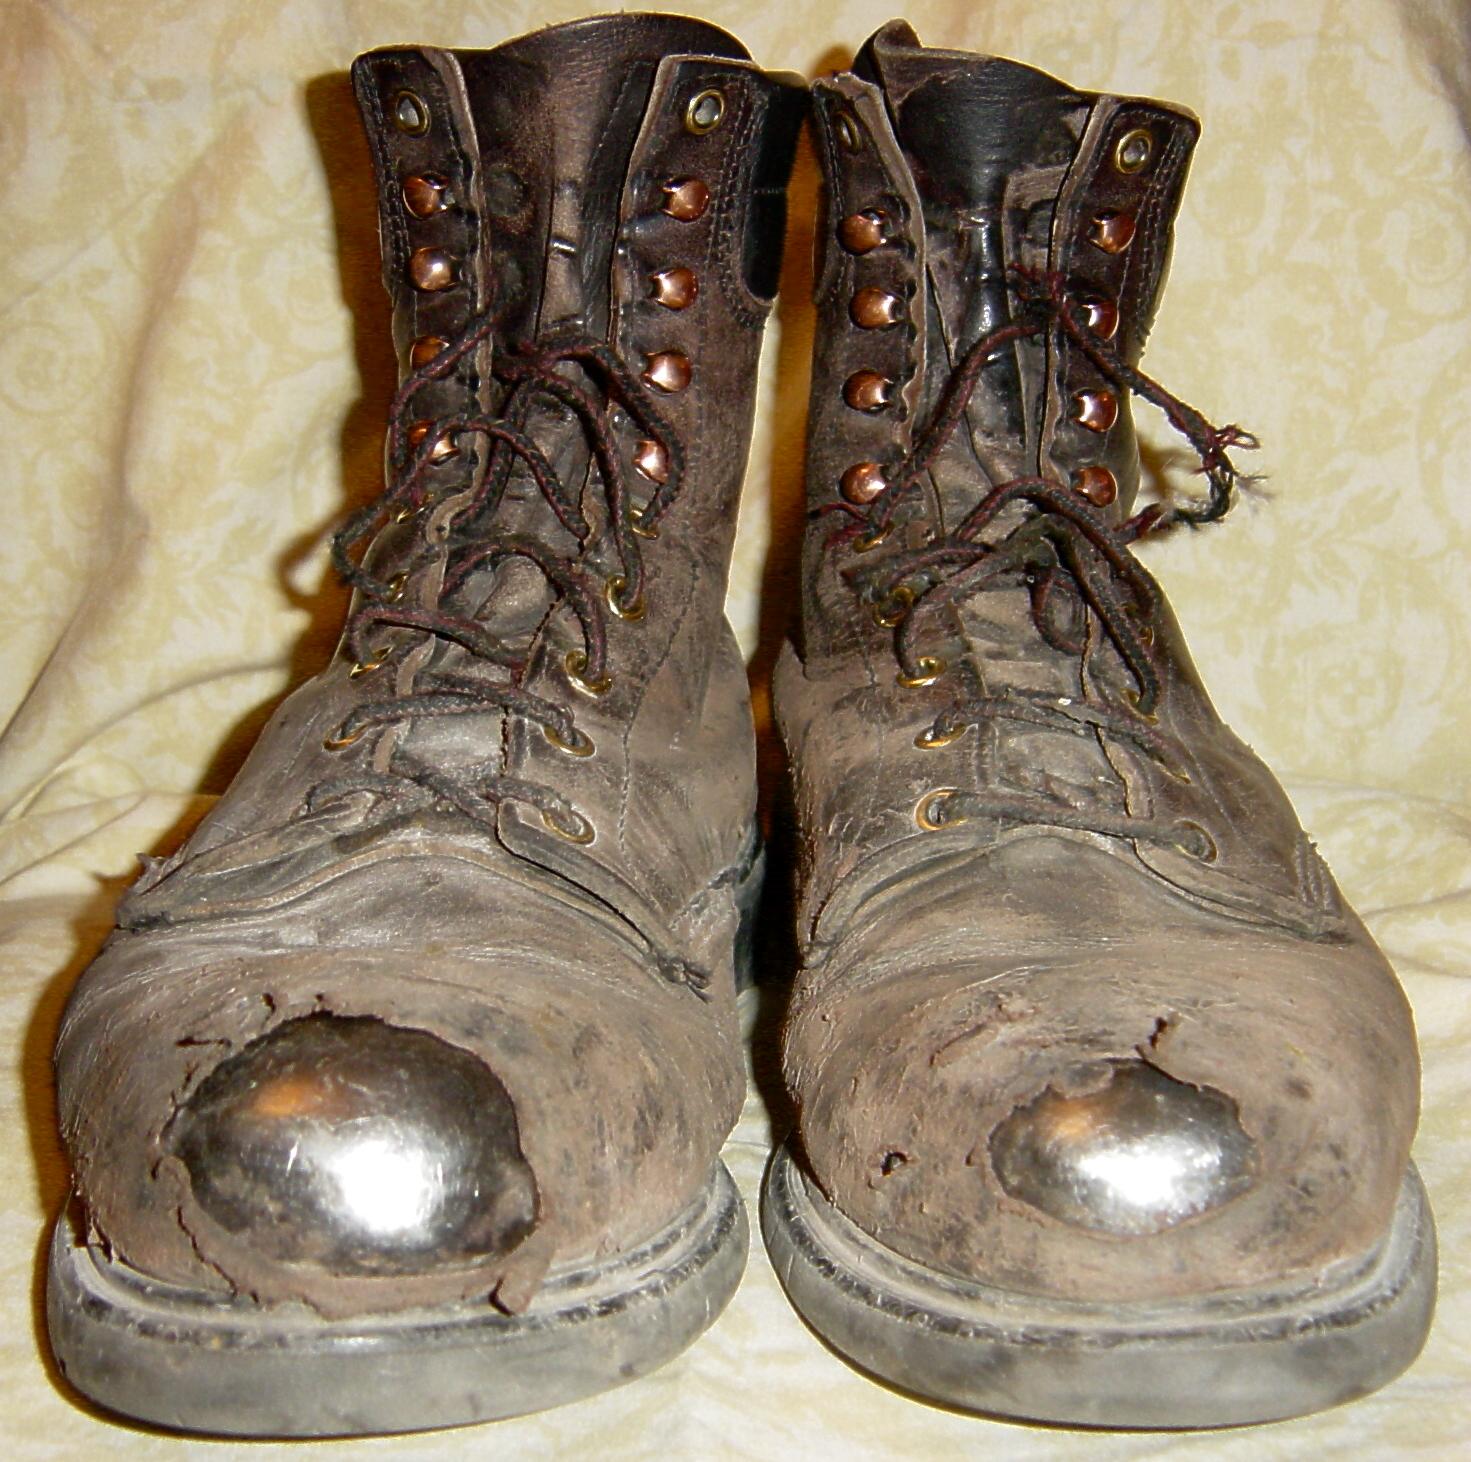 Tattered Old Work Boots